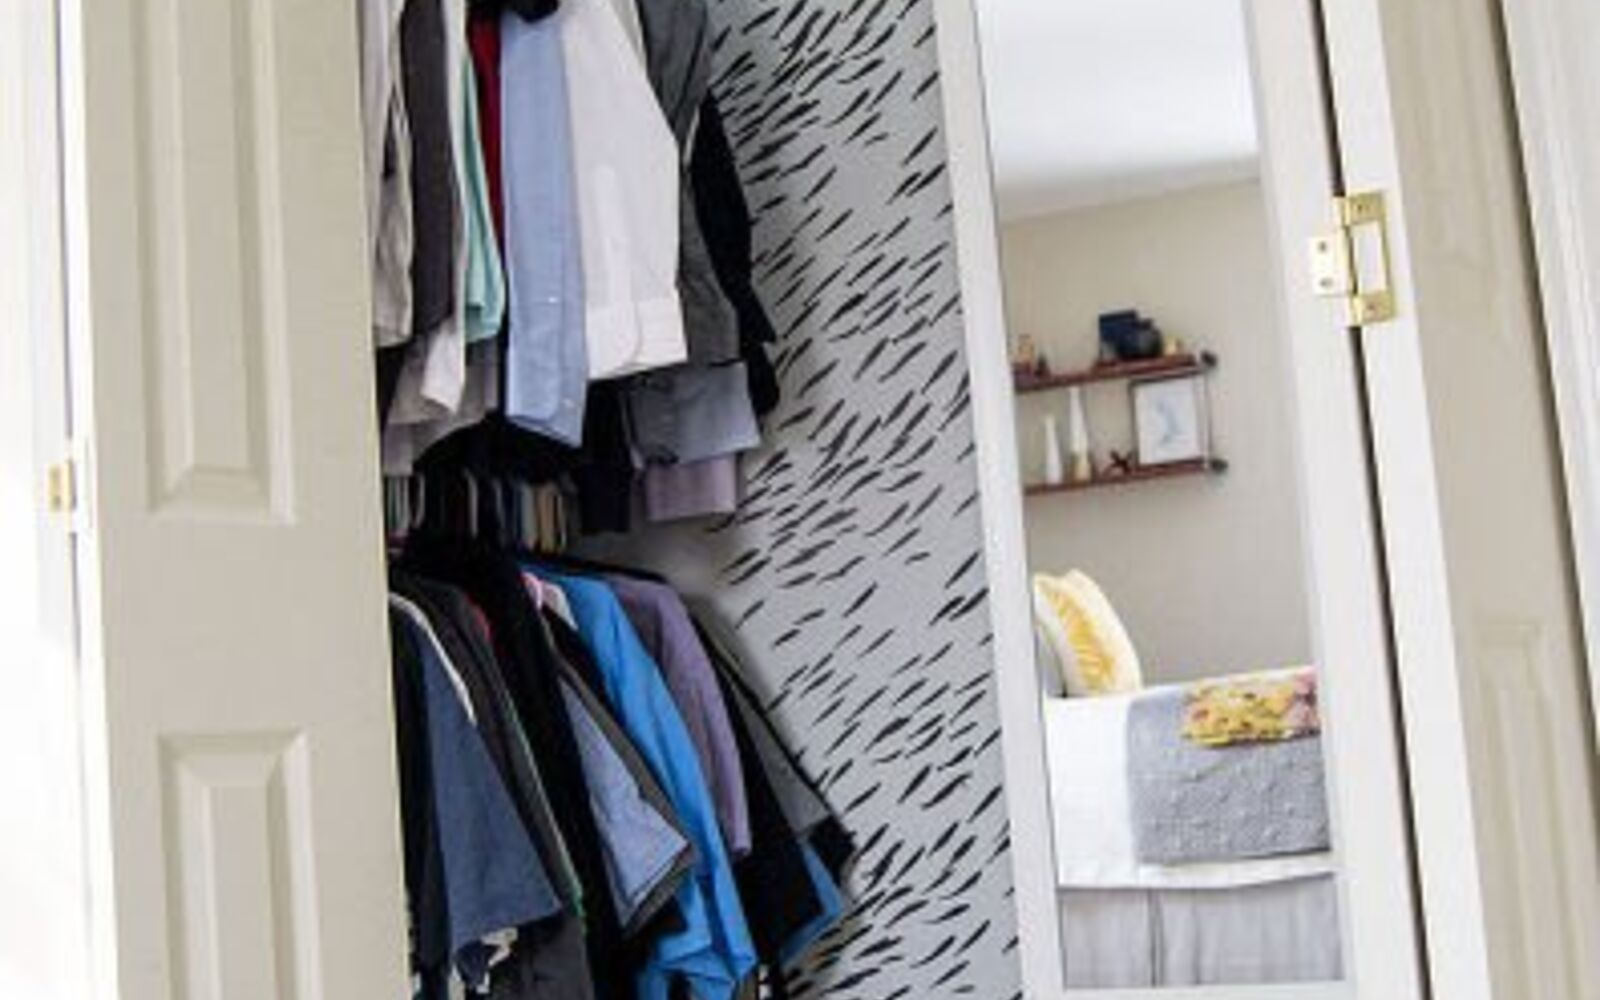 s the best organizing ideas of 2015 that you should do this year too, organizing, Making Better Use of Your Closet